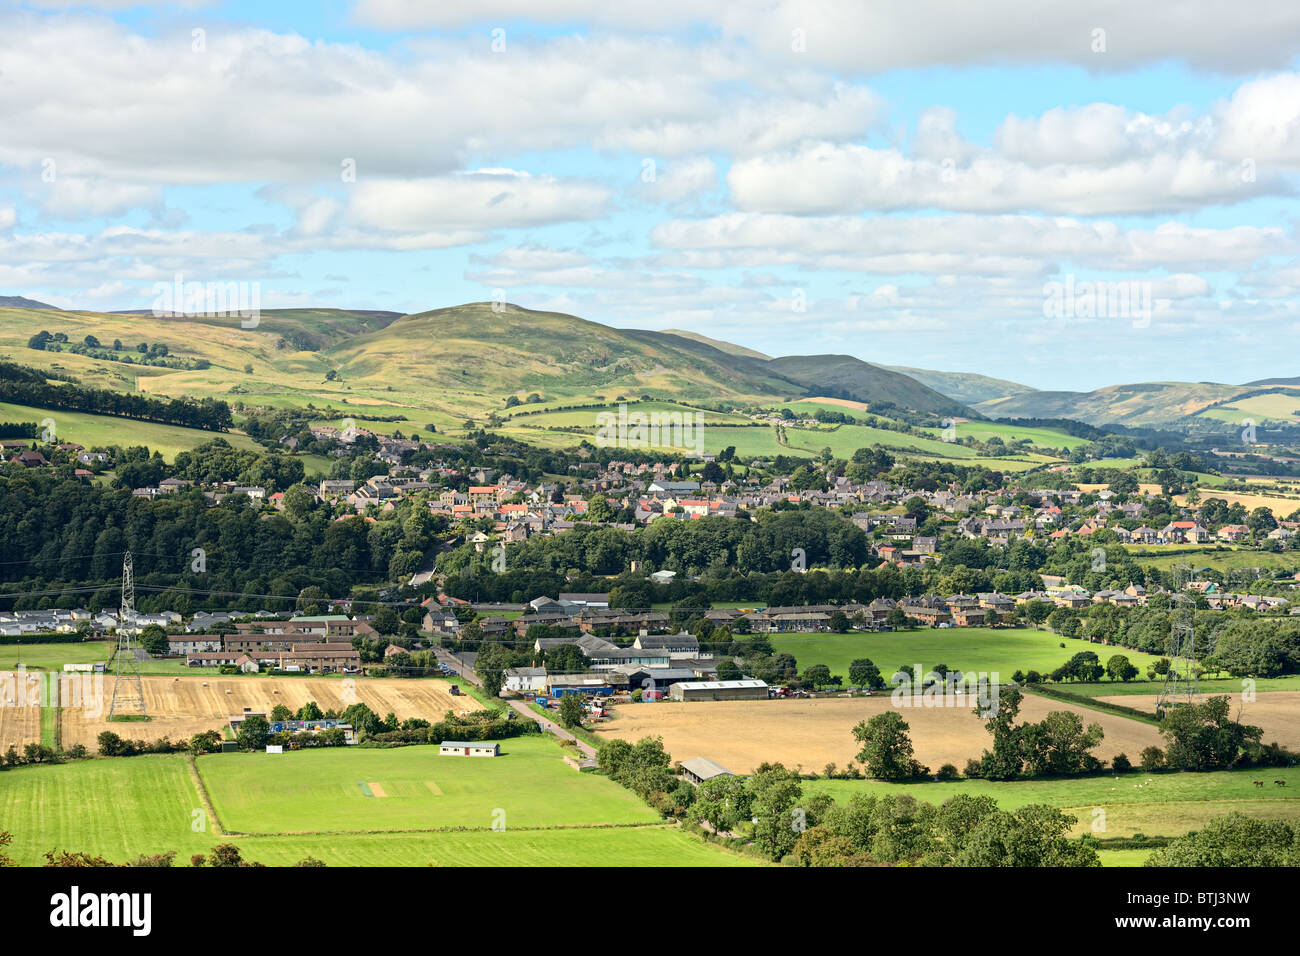 Wooler, Northumberland, England, UK, with Humbleton Hill in the background - Stock Image